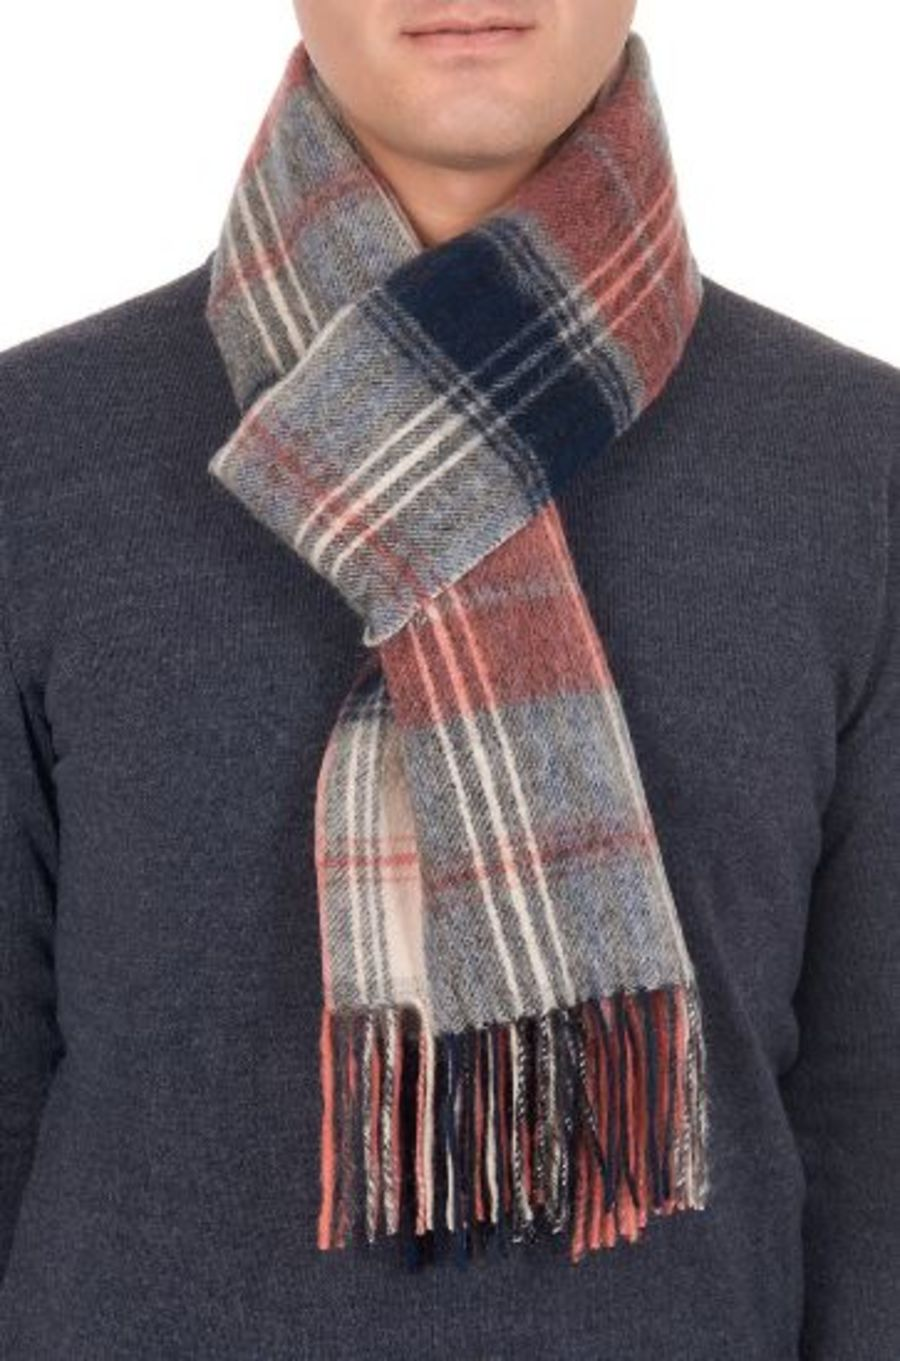 Classic Gents Style 100% Wool Scarf - PBY21W